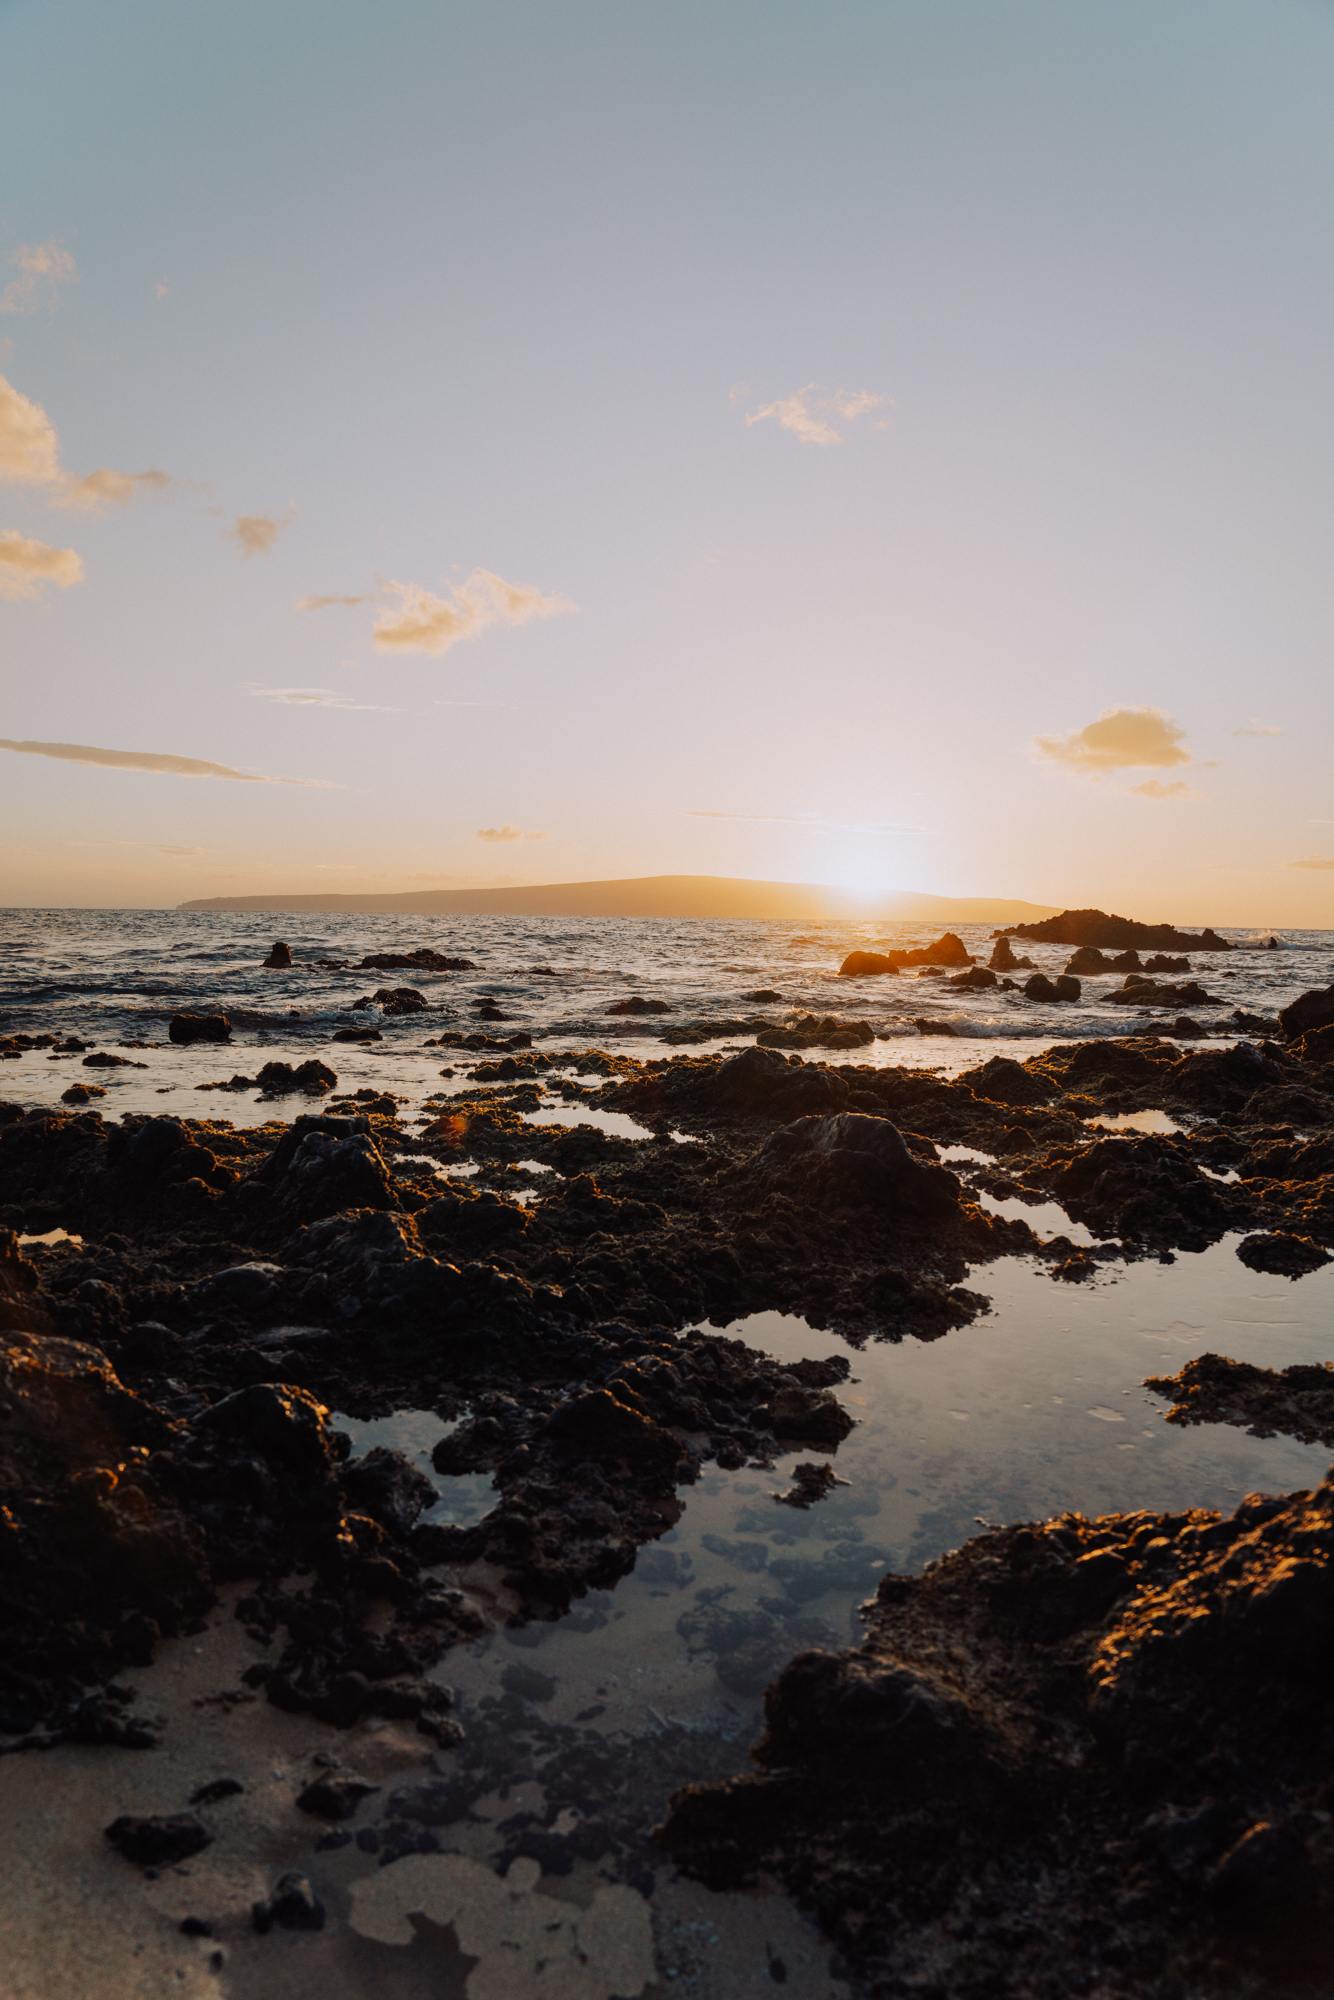 sunset over a rocky beach in Hawaii